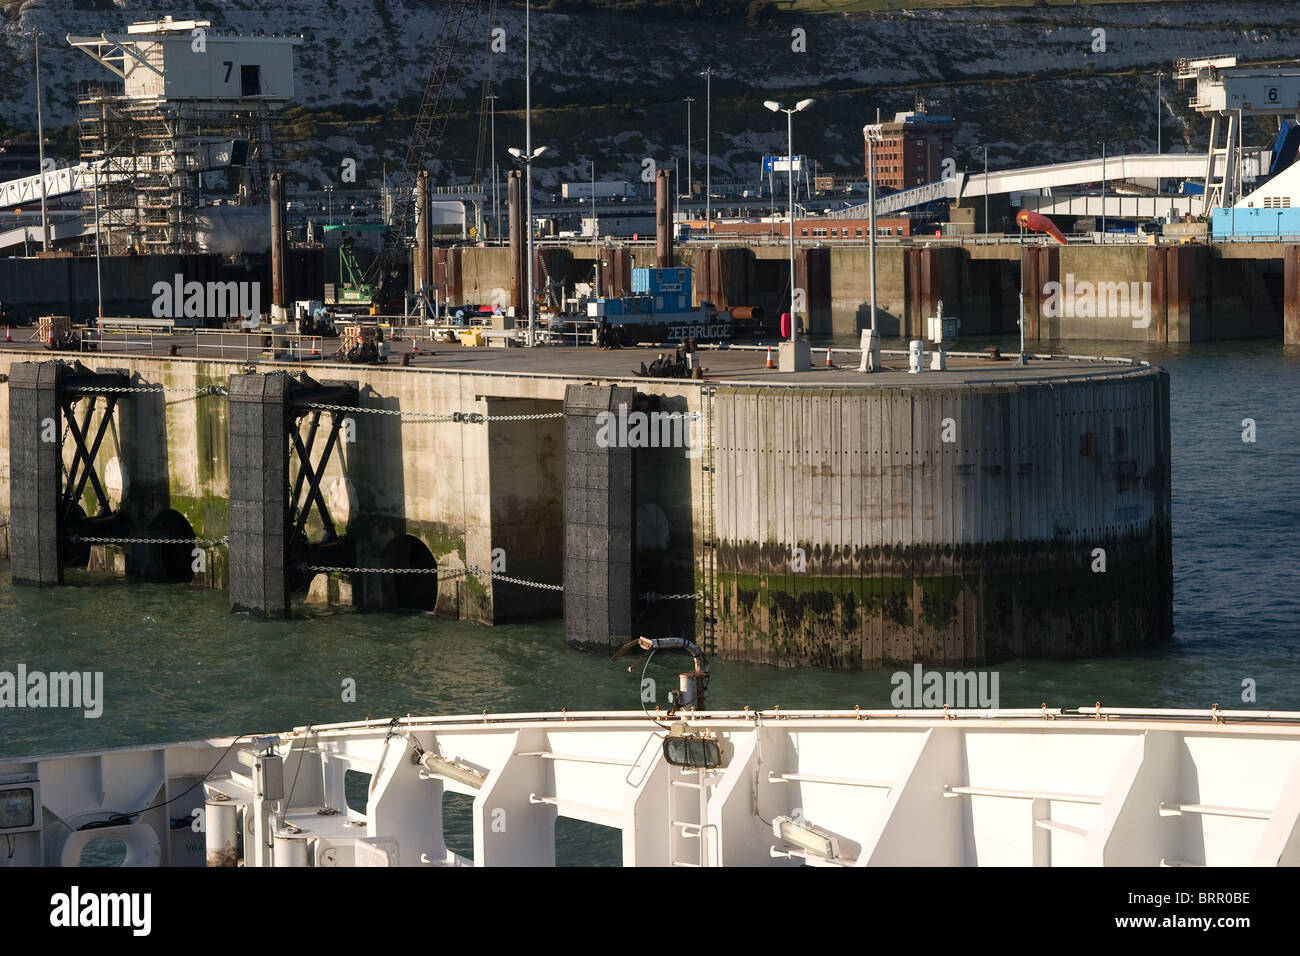 embarkation point dover docks port ferry mooring - Stock Image